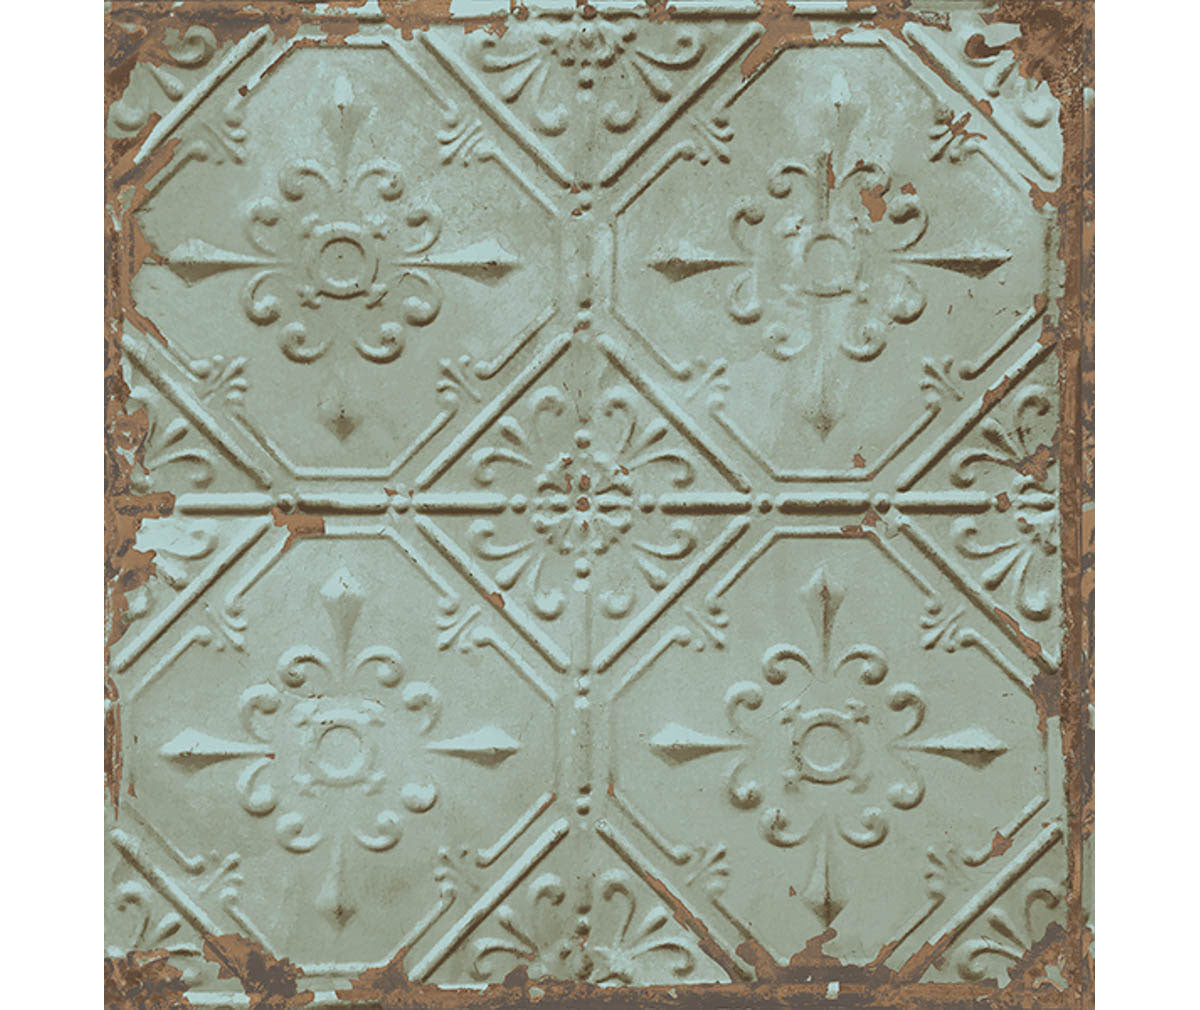 Tin Ceiling Teal Distressed Tiles Wallpaper available at Barrydowne Paint